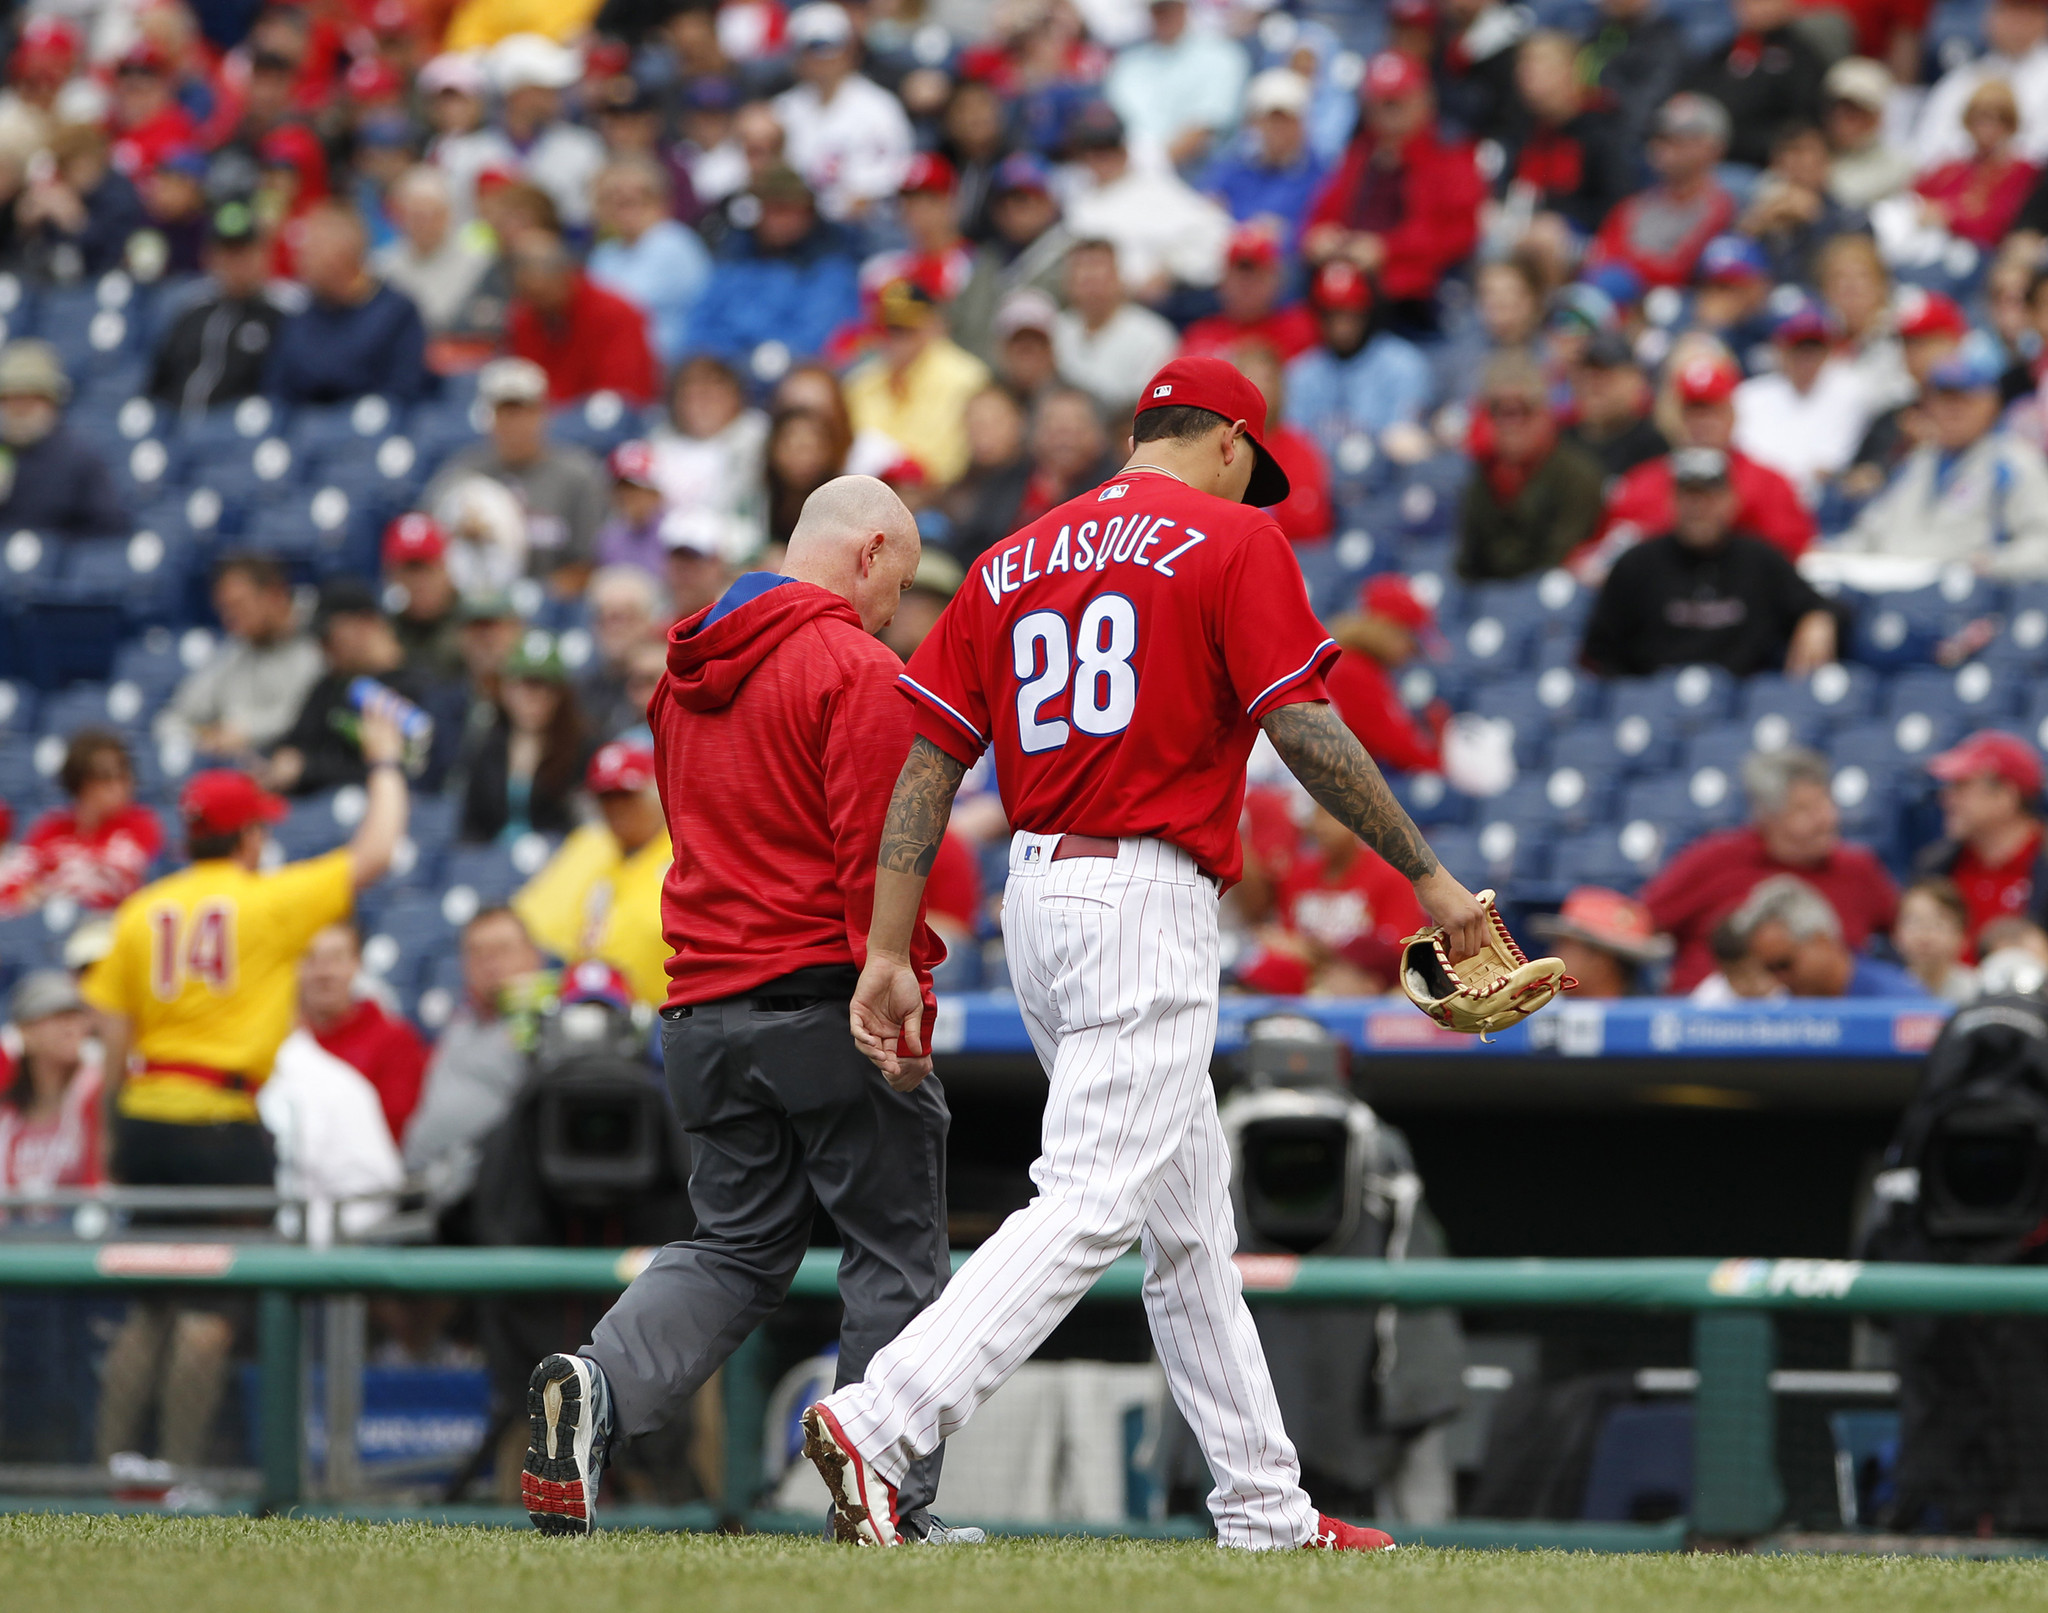 Mc-phillies-questions-answered-how-many-spare-elbows-do-they-have-20160610